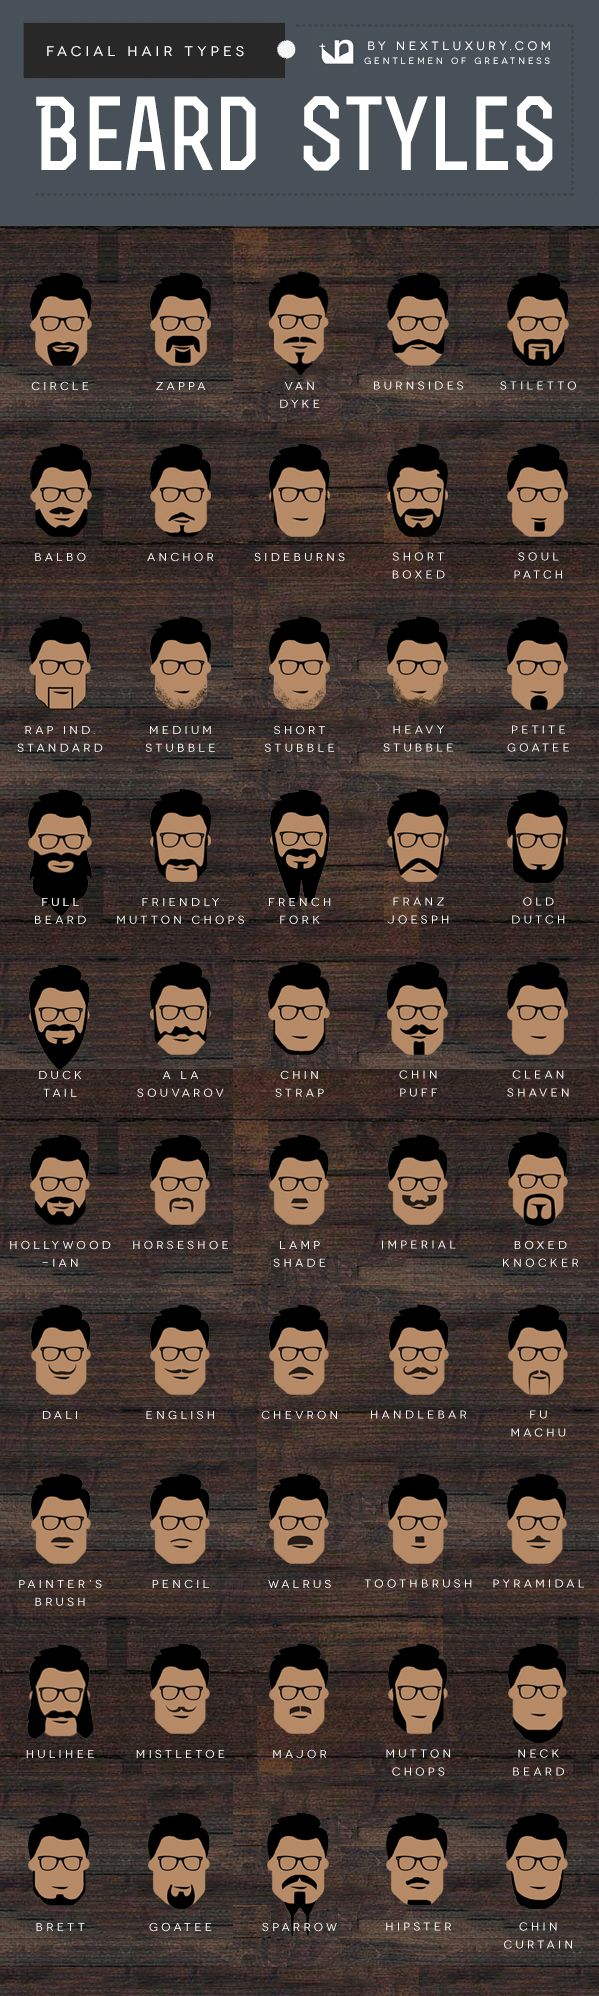 50+ Beard Styles And Facial Hair Types – Definitive Guide For Men